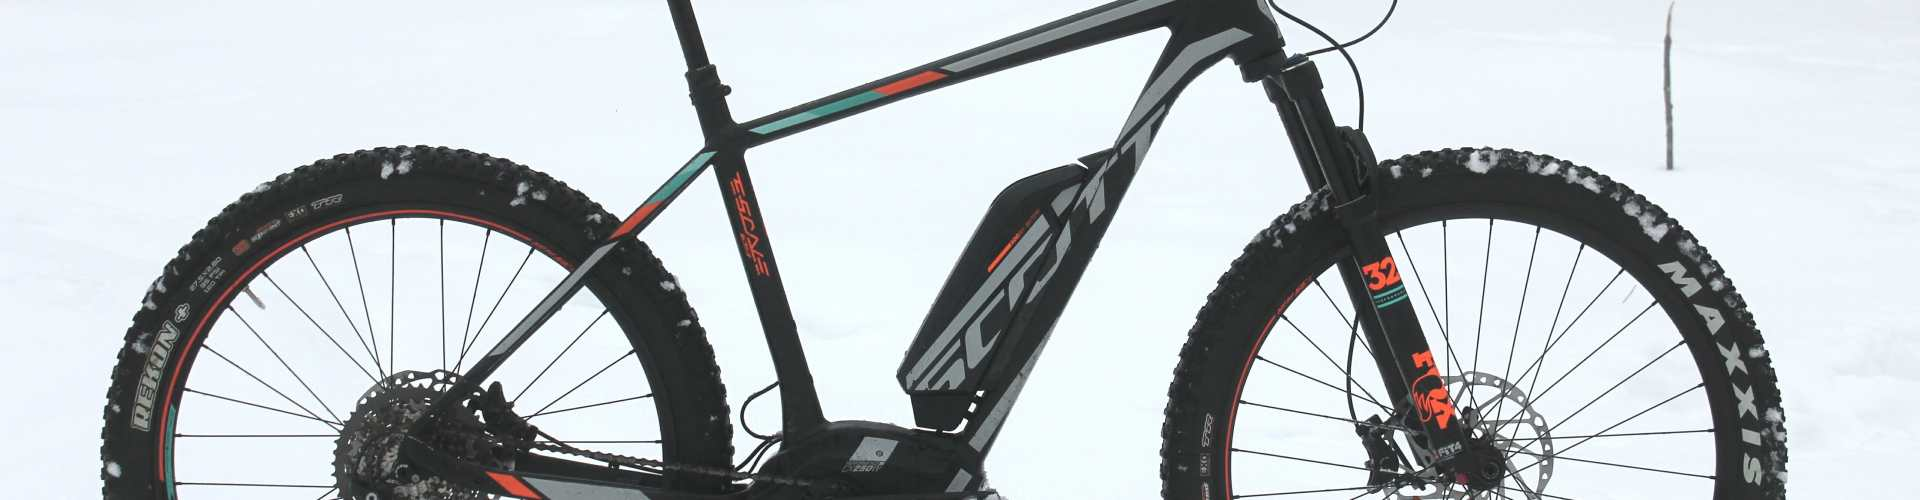 Test av el-sykkel: Scott E-Scale 710 Plus